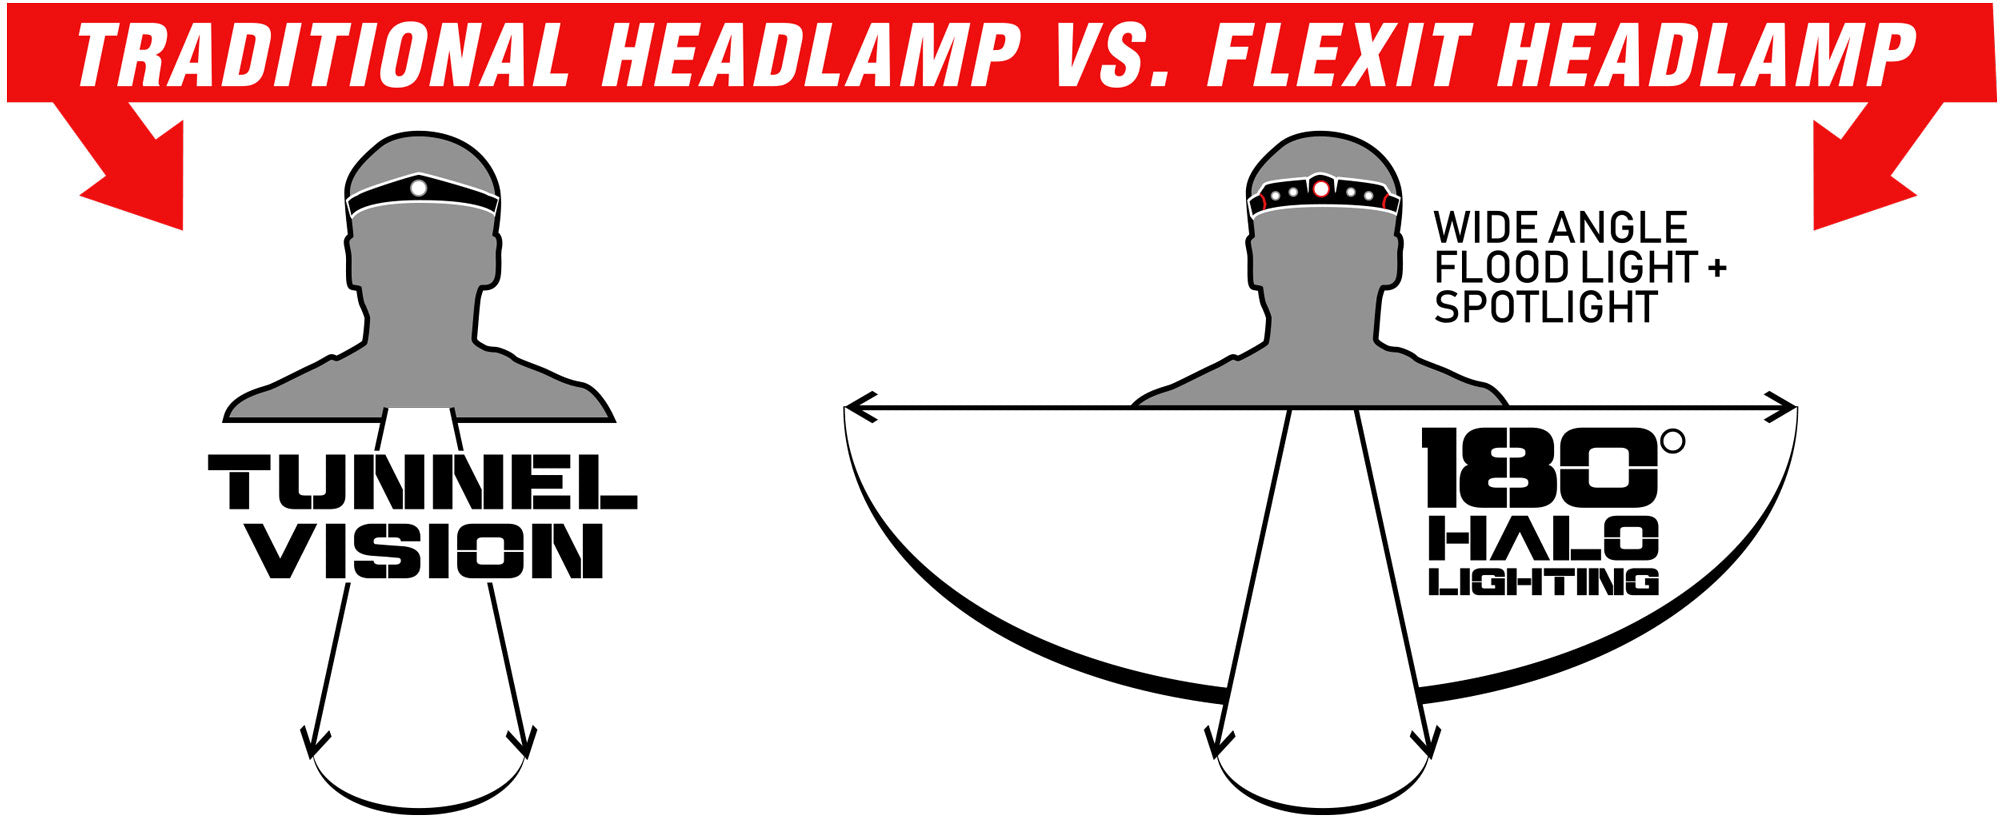 FLEXIT Headlamp 2.5 180 degree halo lighting